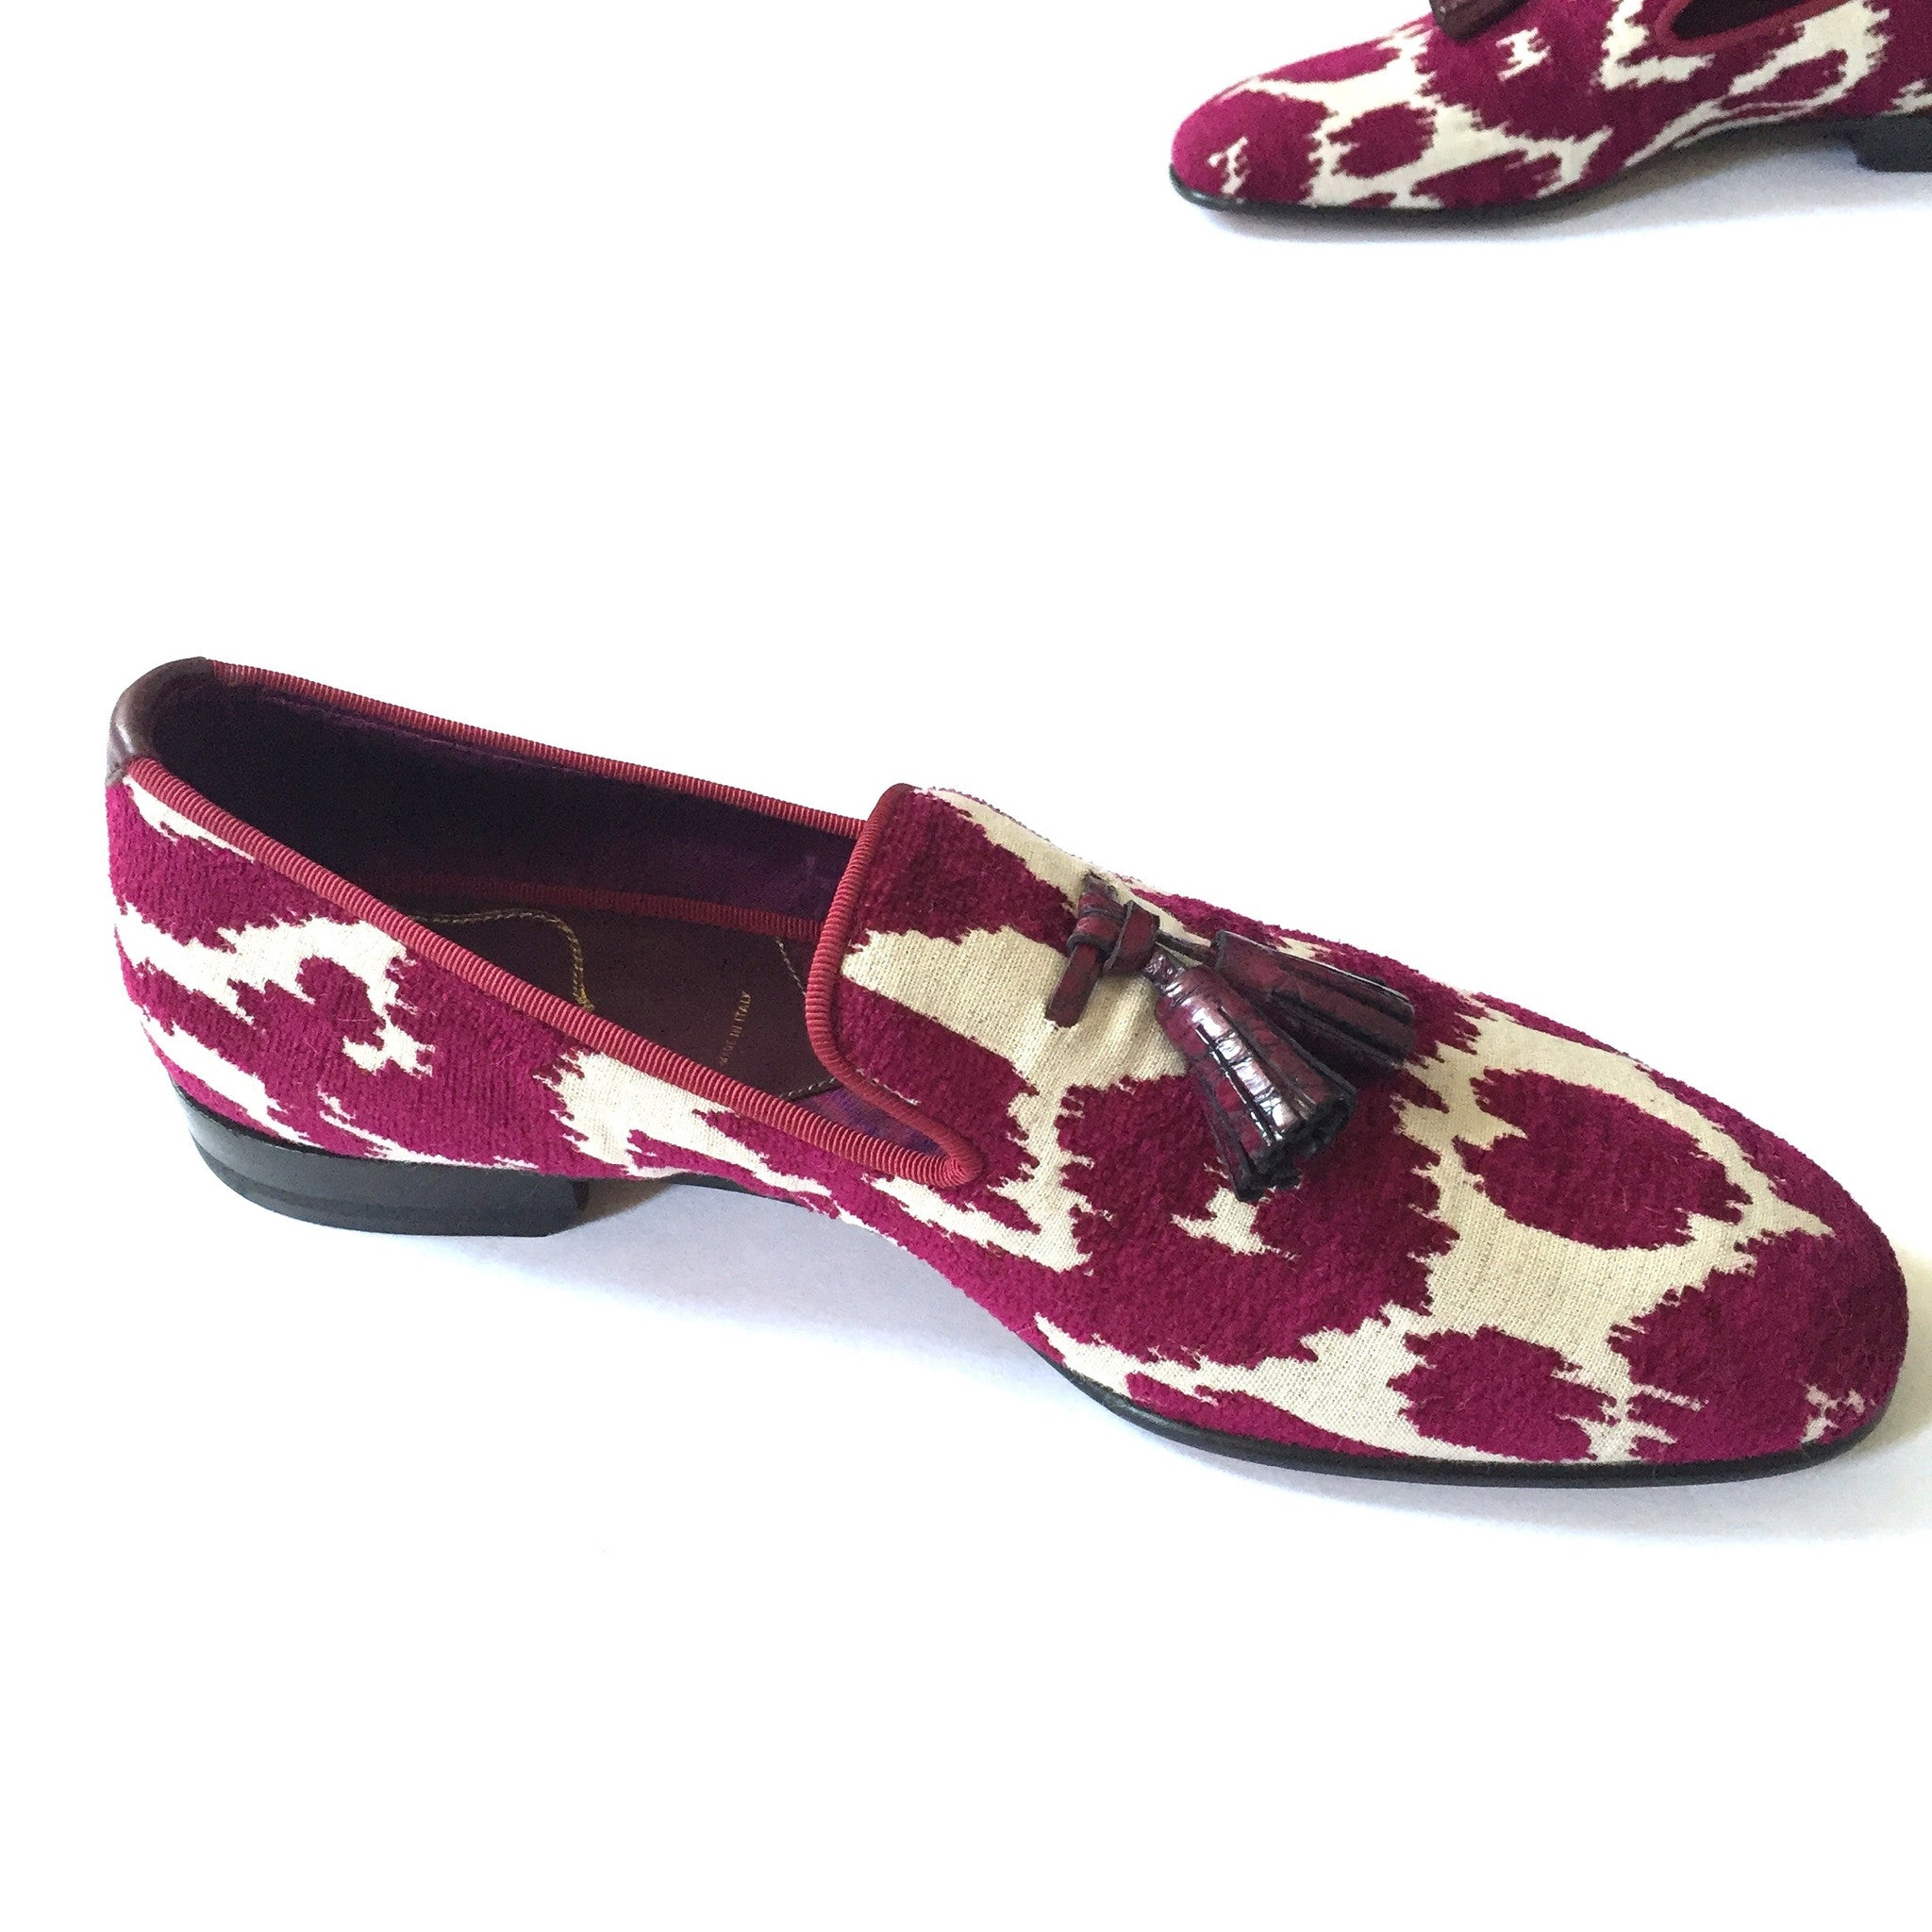 Tom Ford - Magenta Jacquard Croc Tassel Loafers